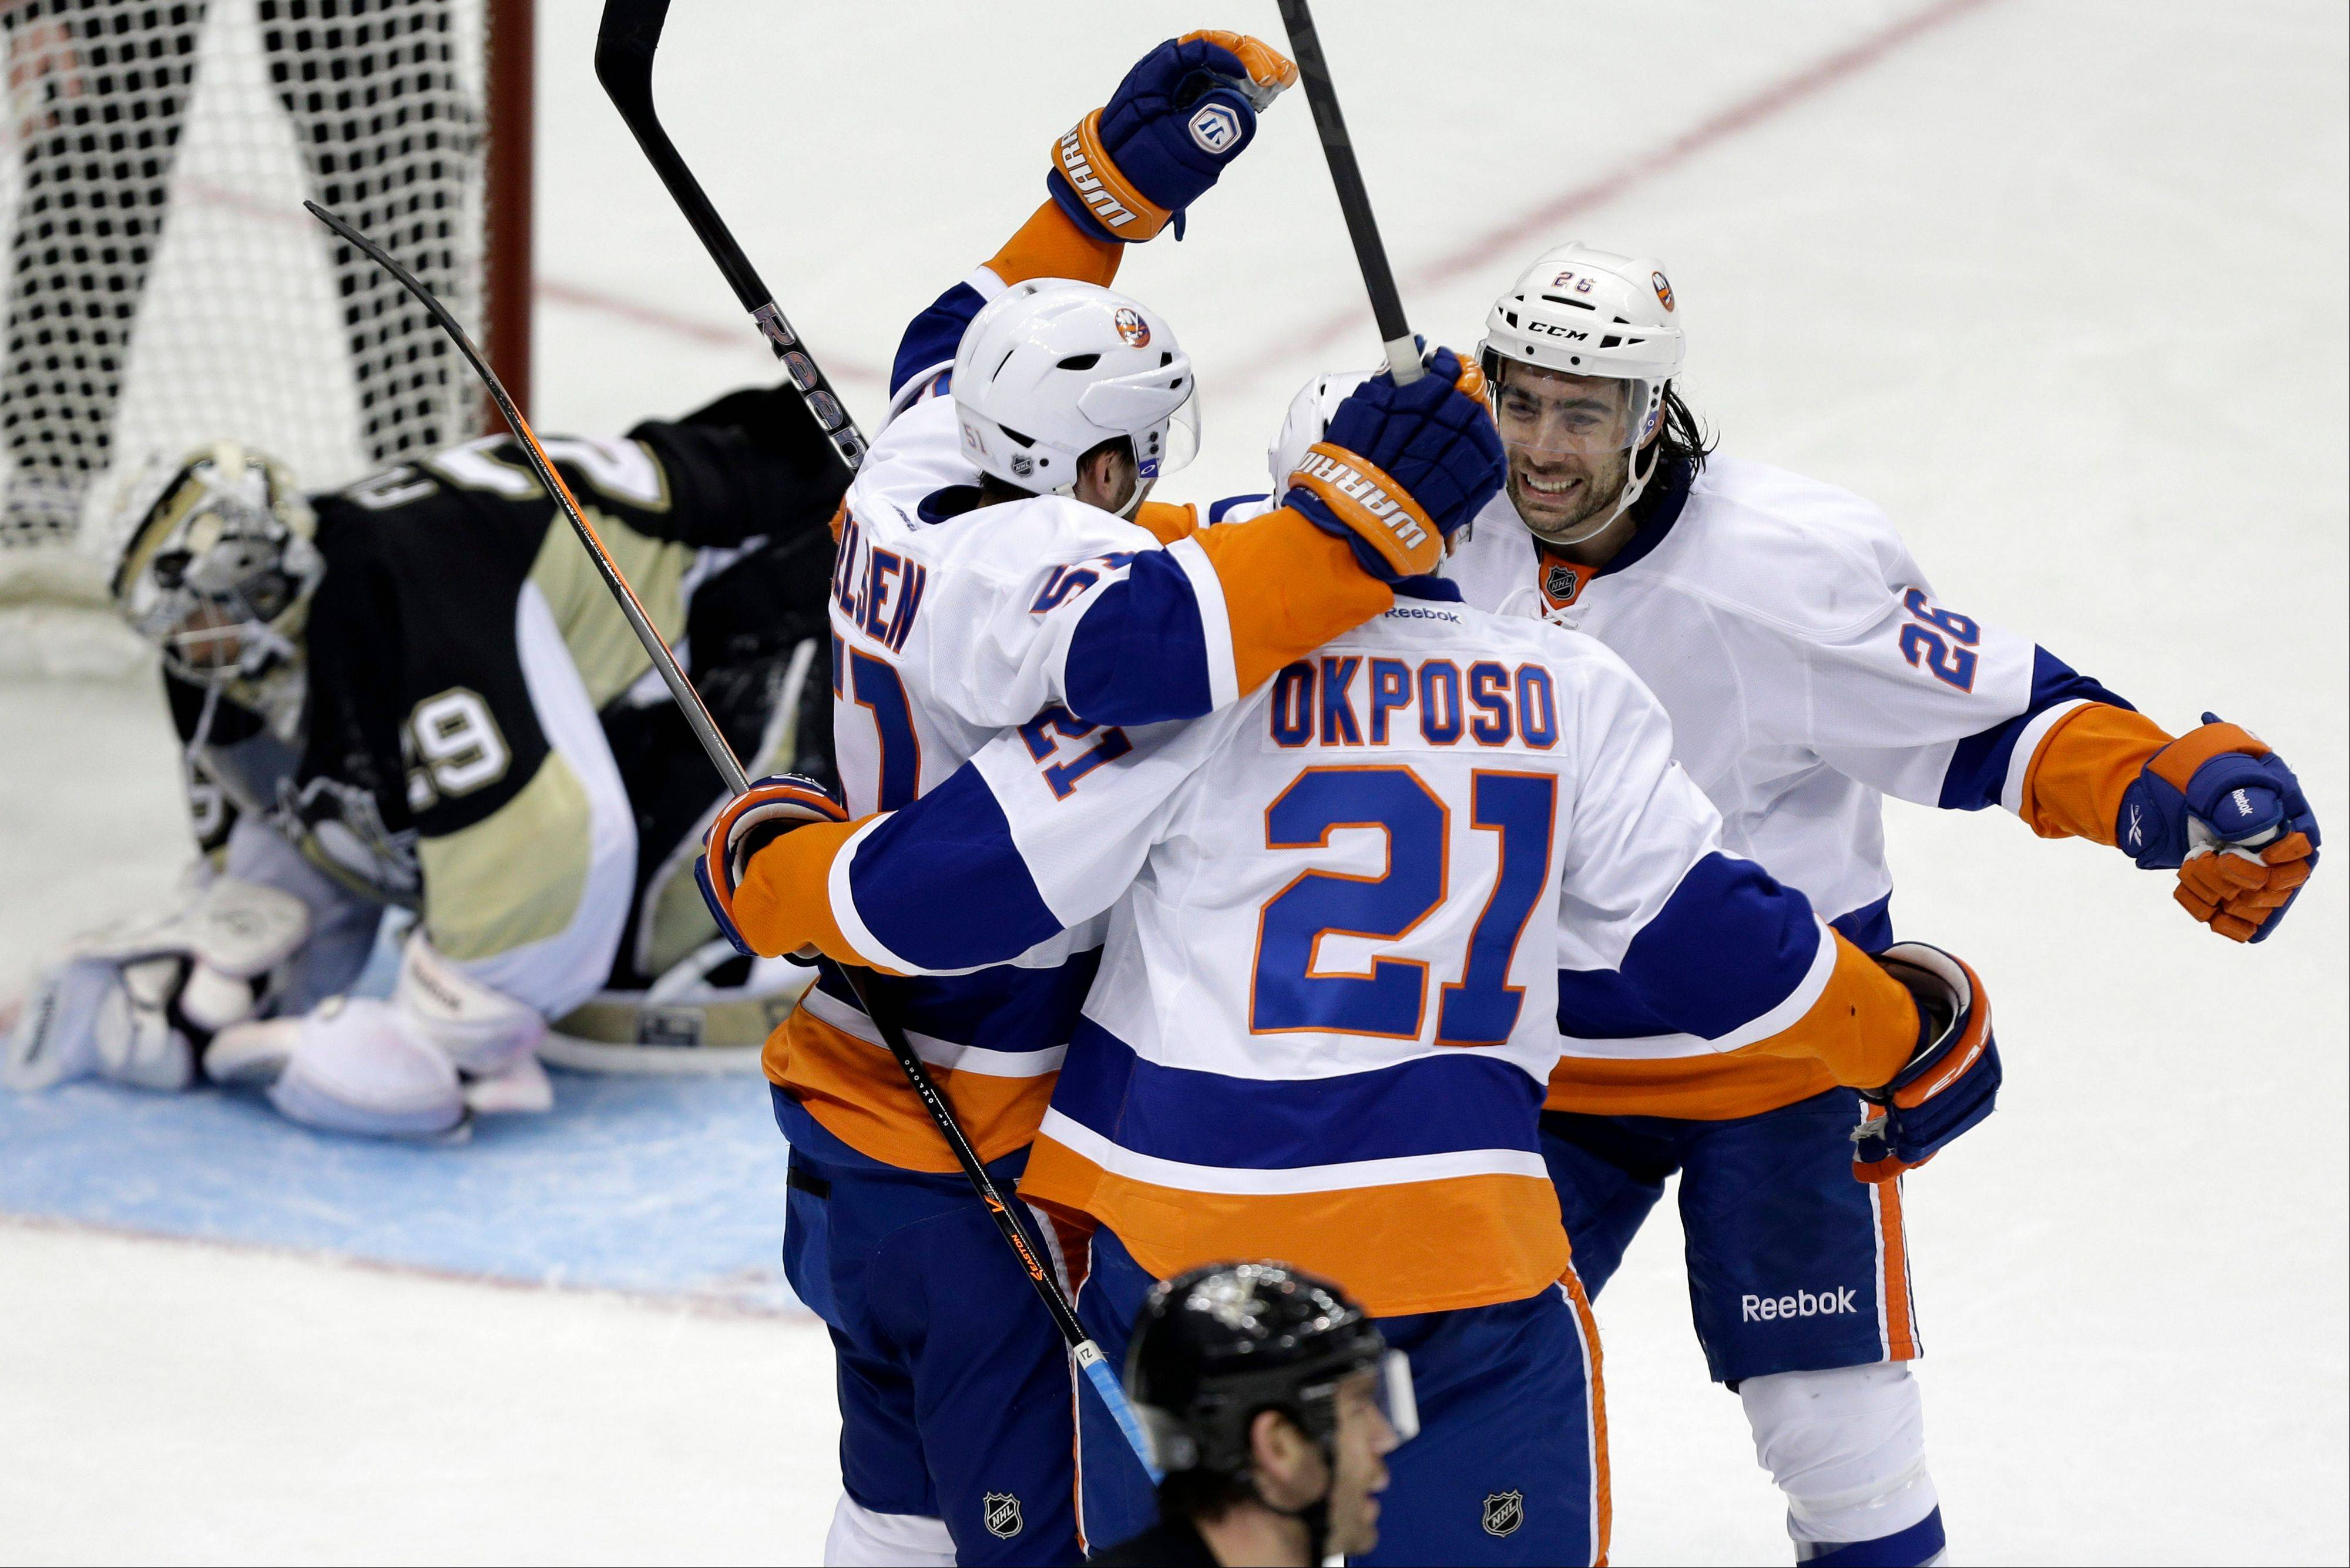 New York Islanders' Kyle Okposo (21) celebrates his goal with teammates Matt Moulson (26) and Frans Nielsen (51) as Pittsburgh Penguins goalie Marc-Andre Fleury (29) collects himself during the third period of Game 2 of an NHL hockey Stanley Cup first-round playoff series, Friday, May 3, 2013, in Pittsburgh. The Islanders won 4-3 to even the series at 1-1.